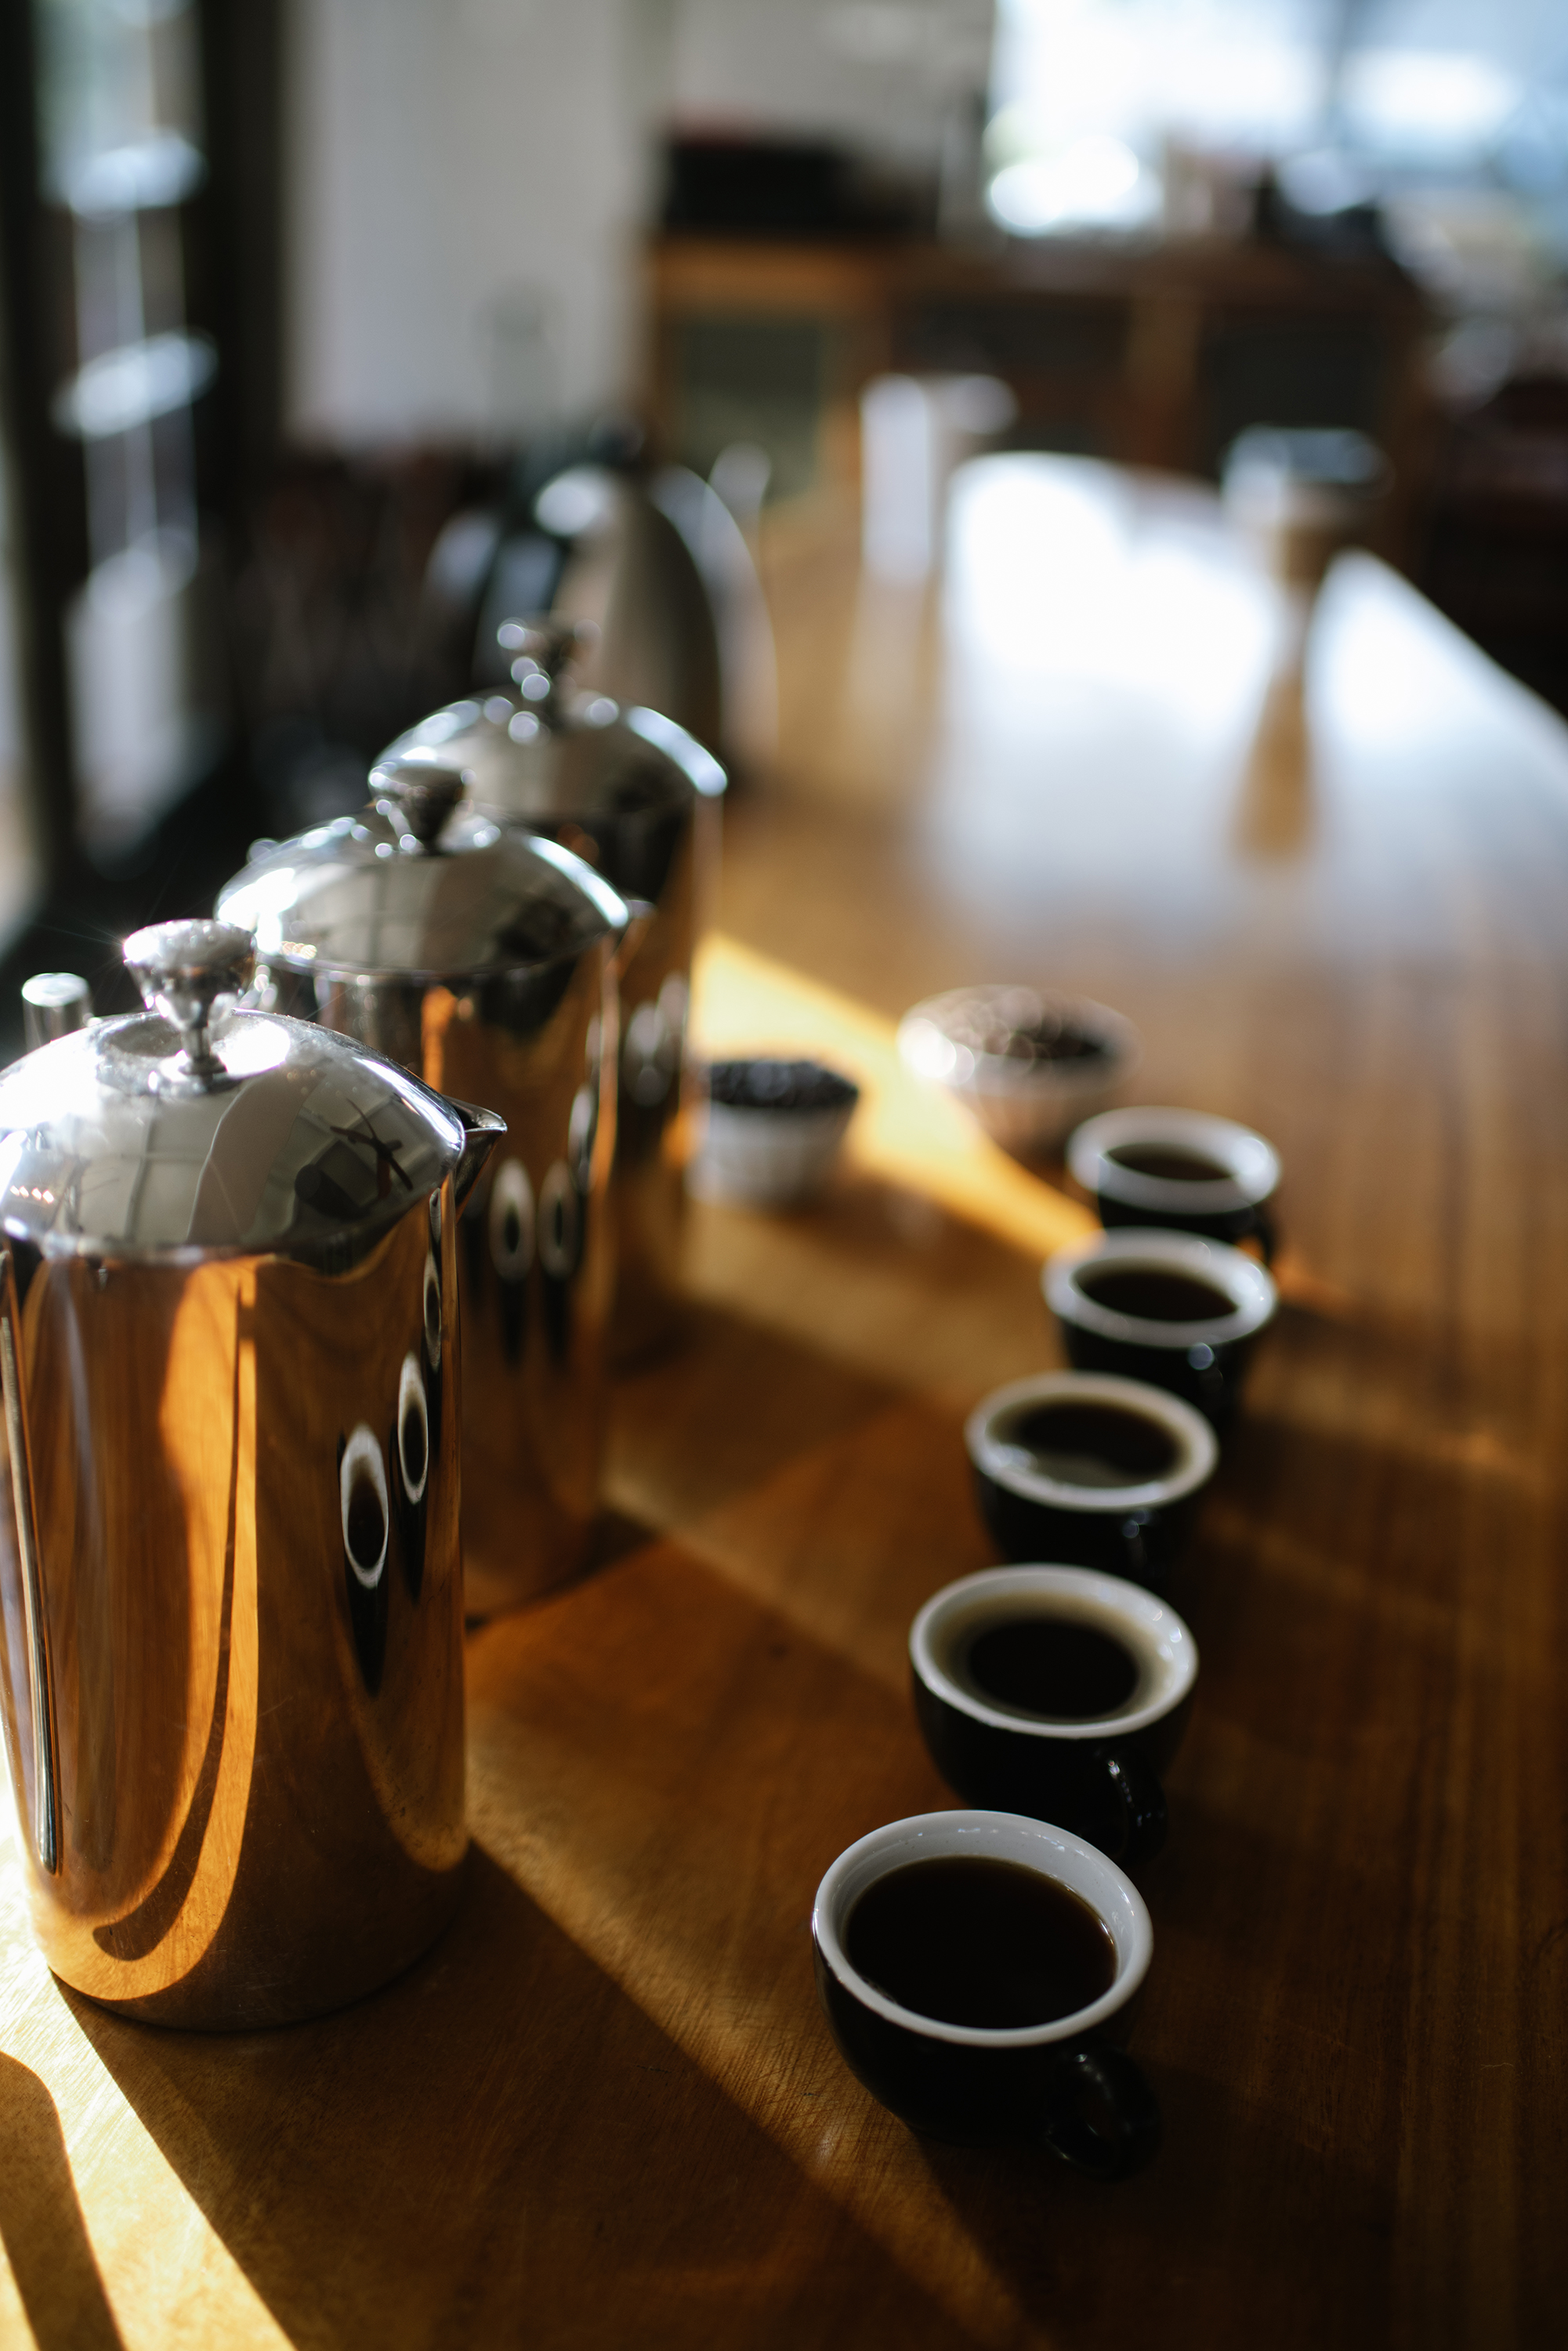 A tasting of 100% Kona coffee at our Kailua-Kona café. PHOTO: Blake Wisz